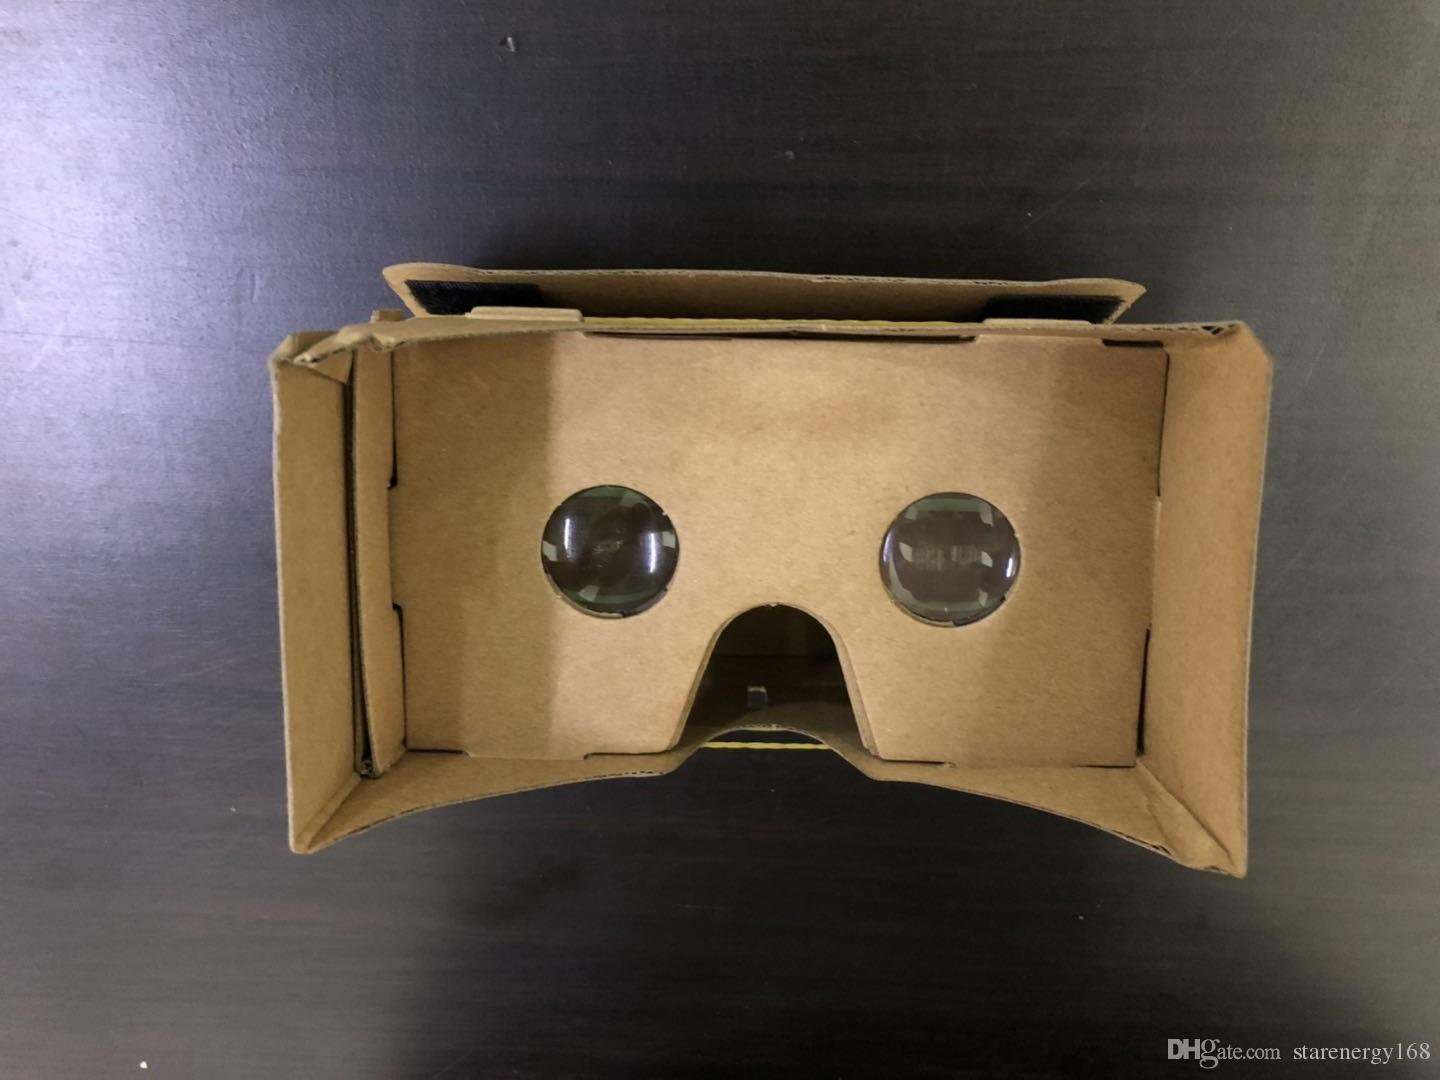 2019 Diy 3d Glasses Google Cardboard Vr Box Ii Virtual Reality For 3 5 6 0 Inch Smartphone New Iphone X 9 8 B Xy From Starenergy168 1 54